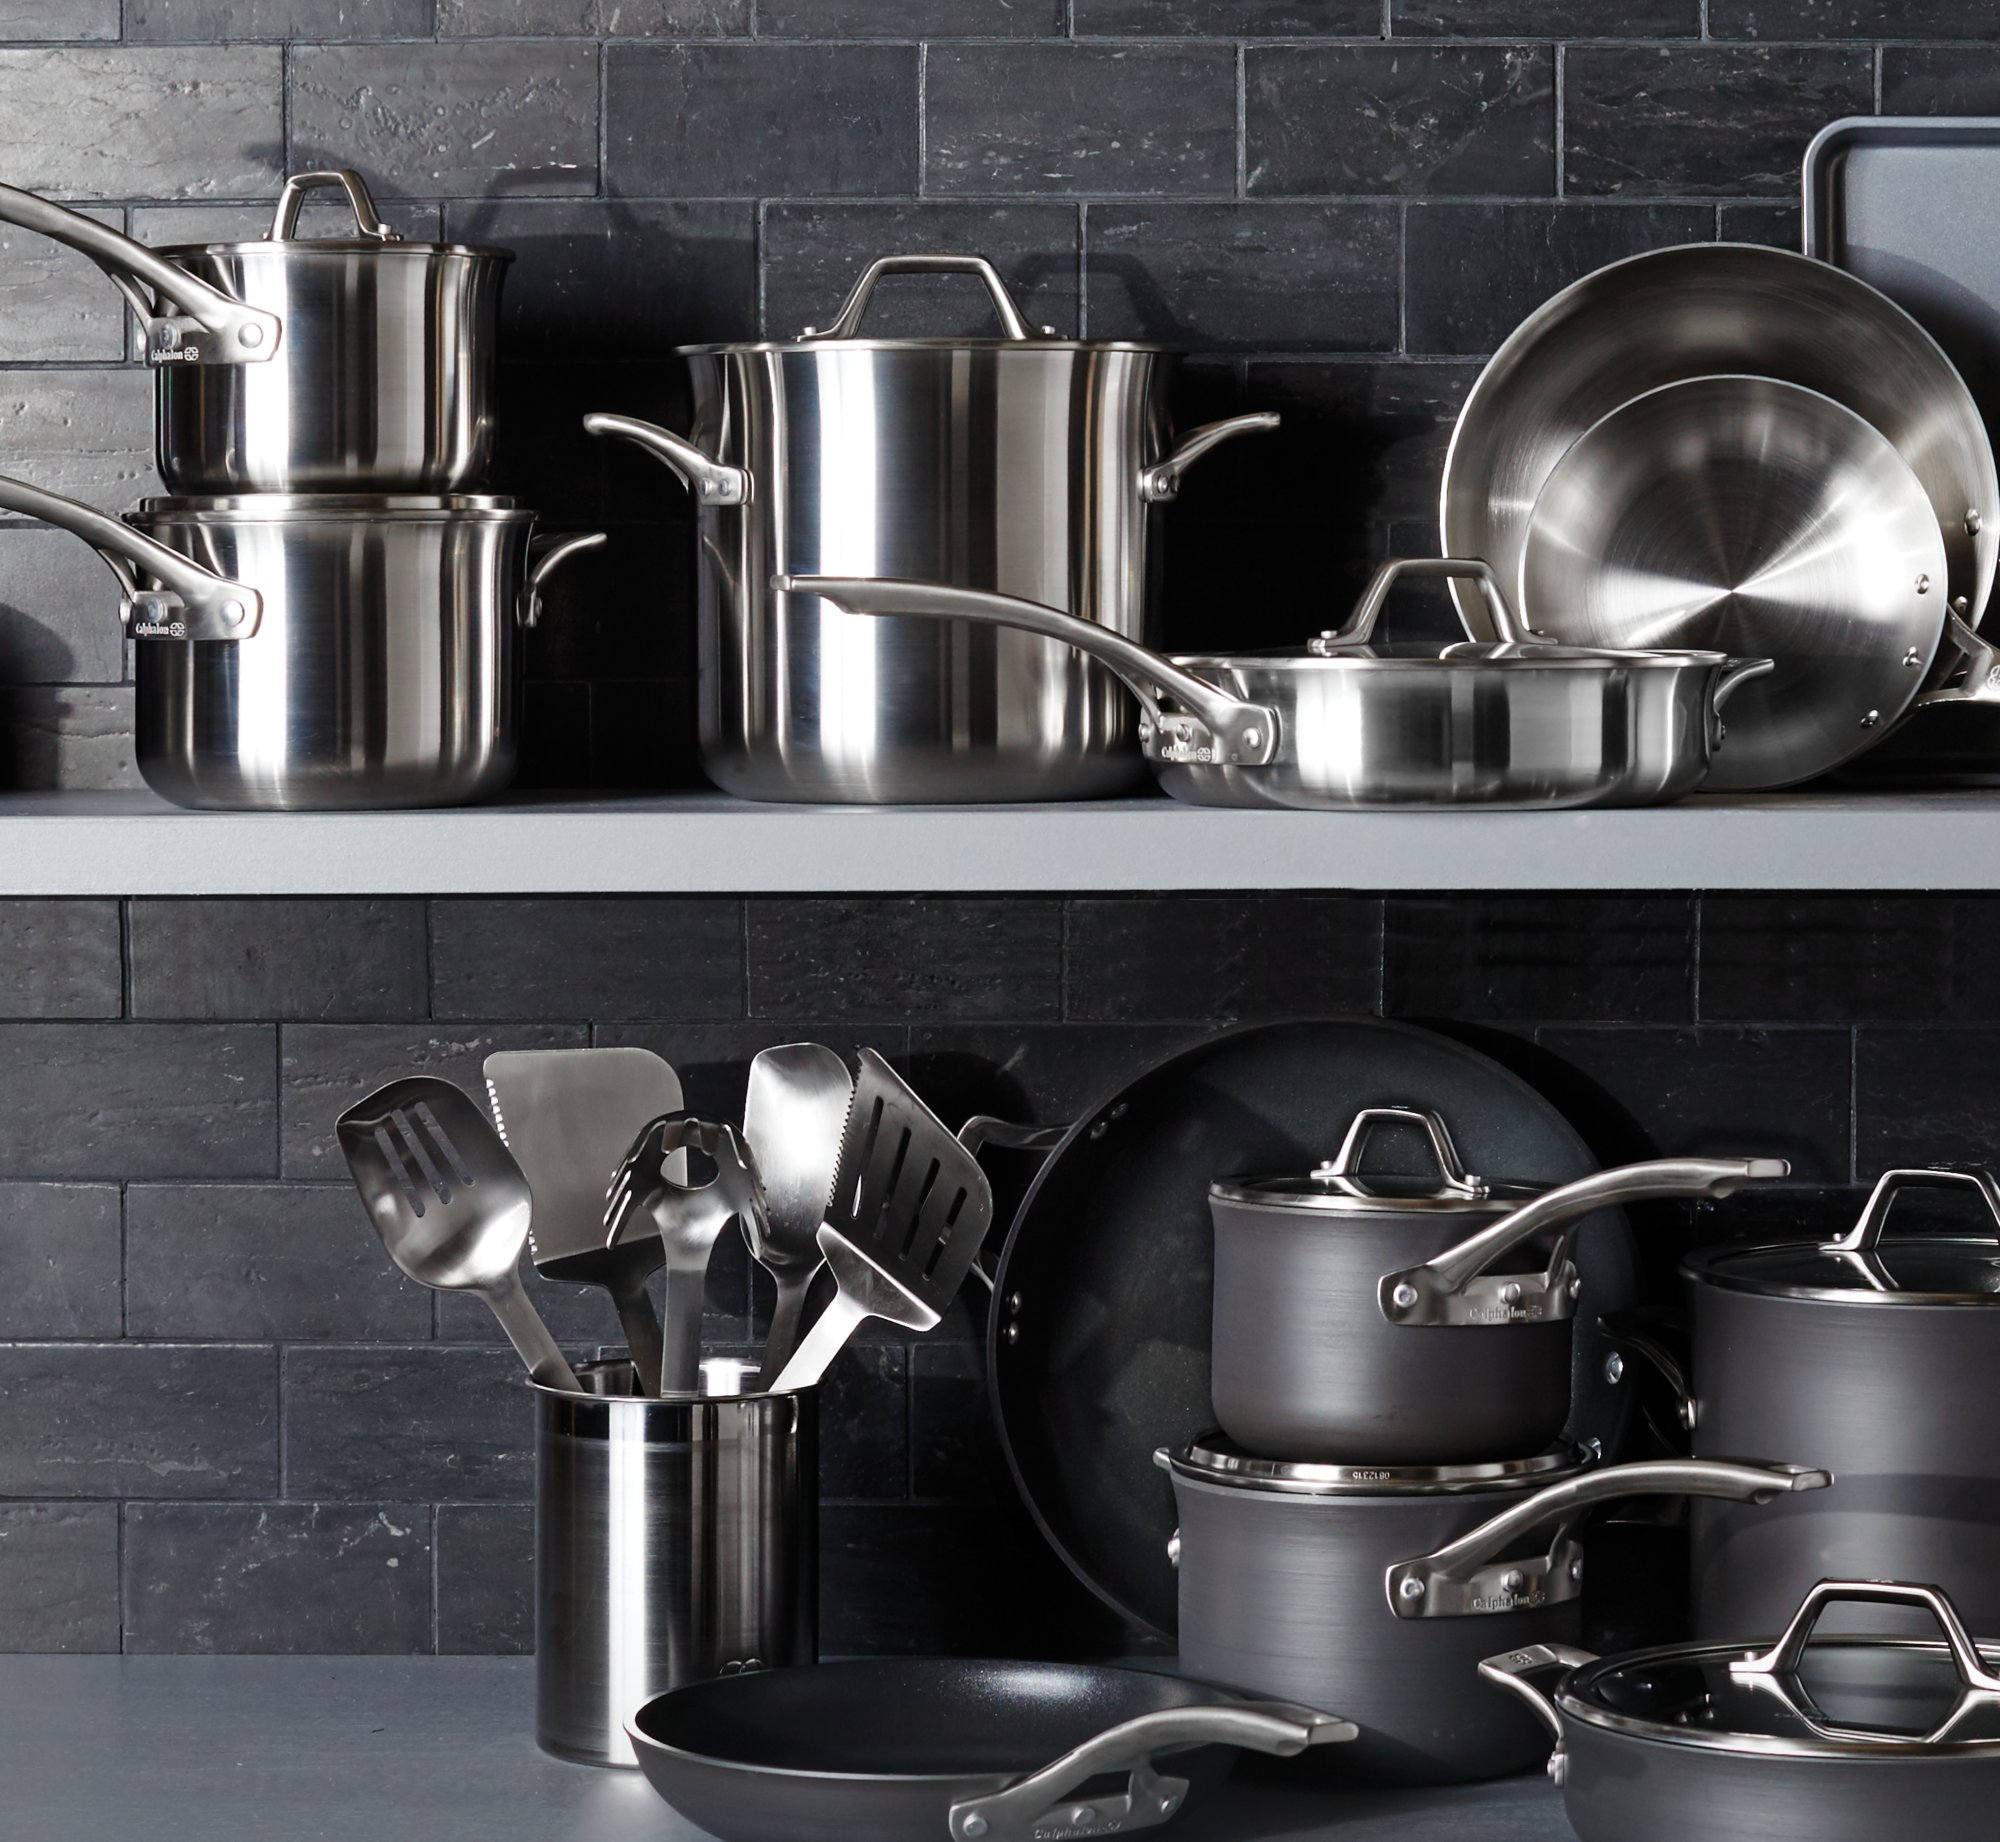 Cookware, Cutlery, Bakeware, Kitchenware & More